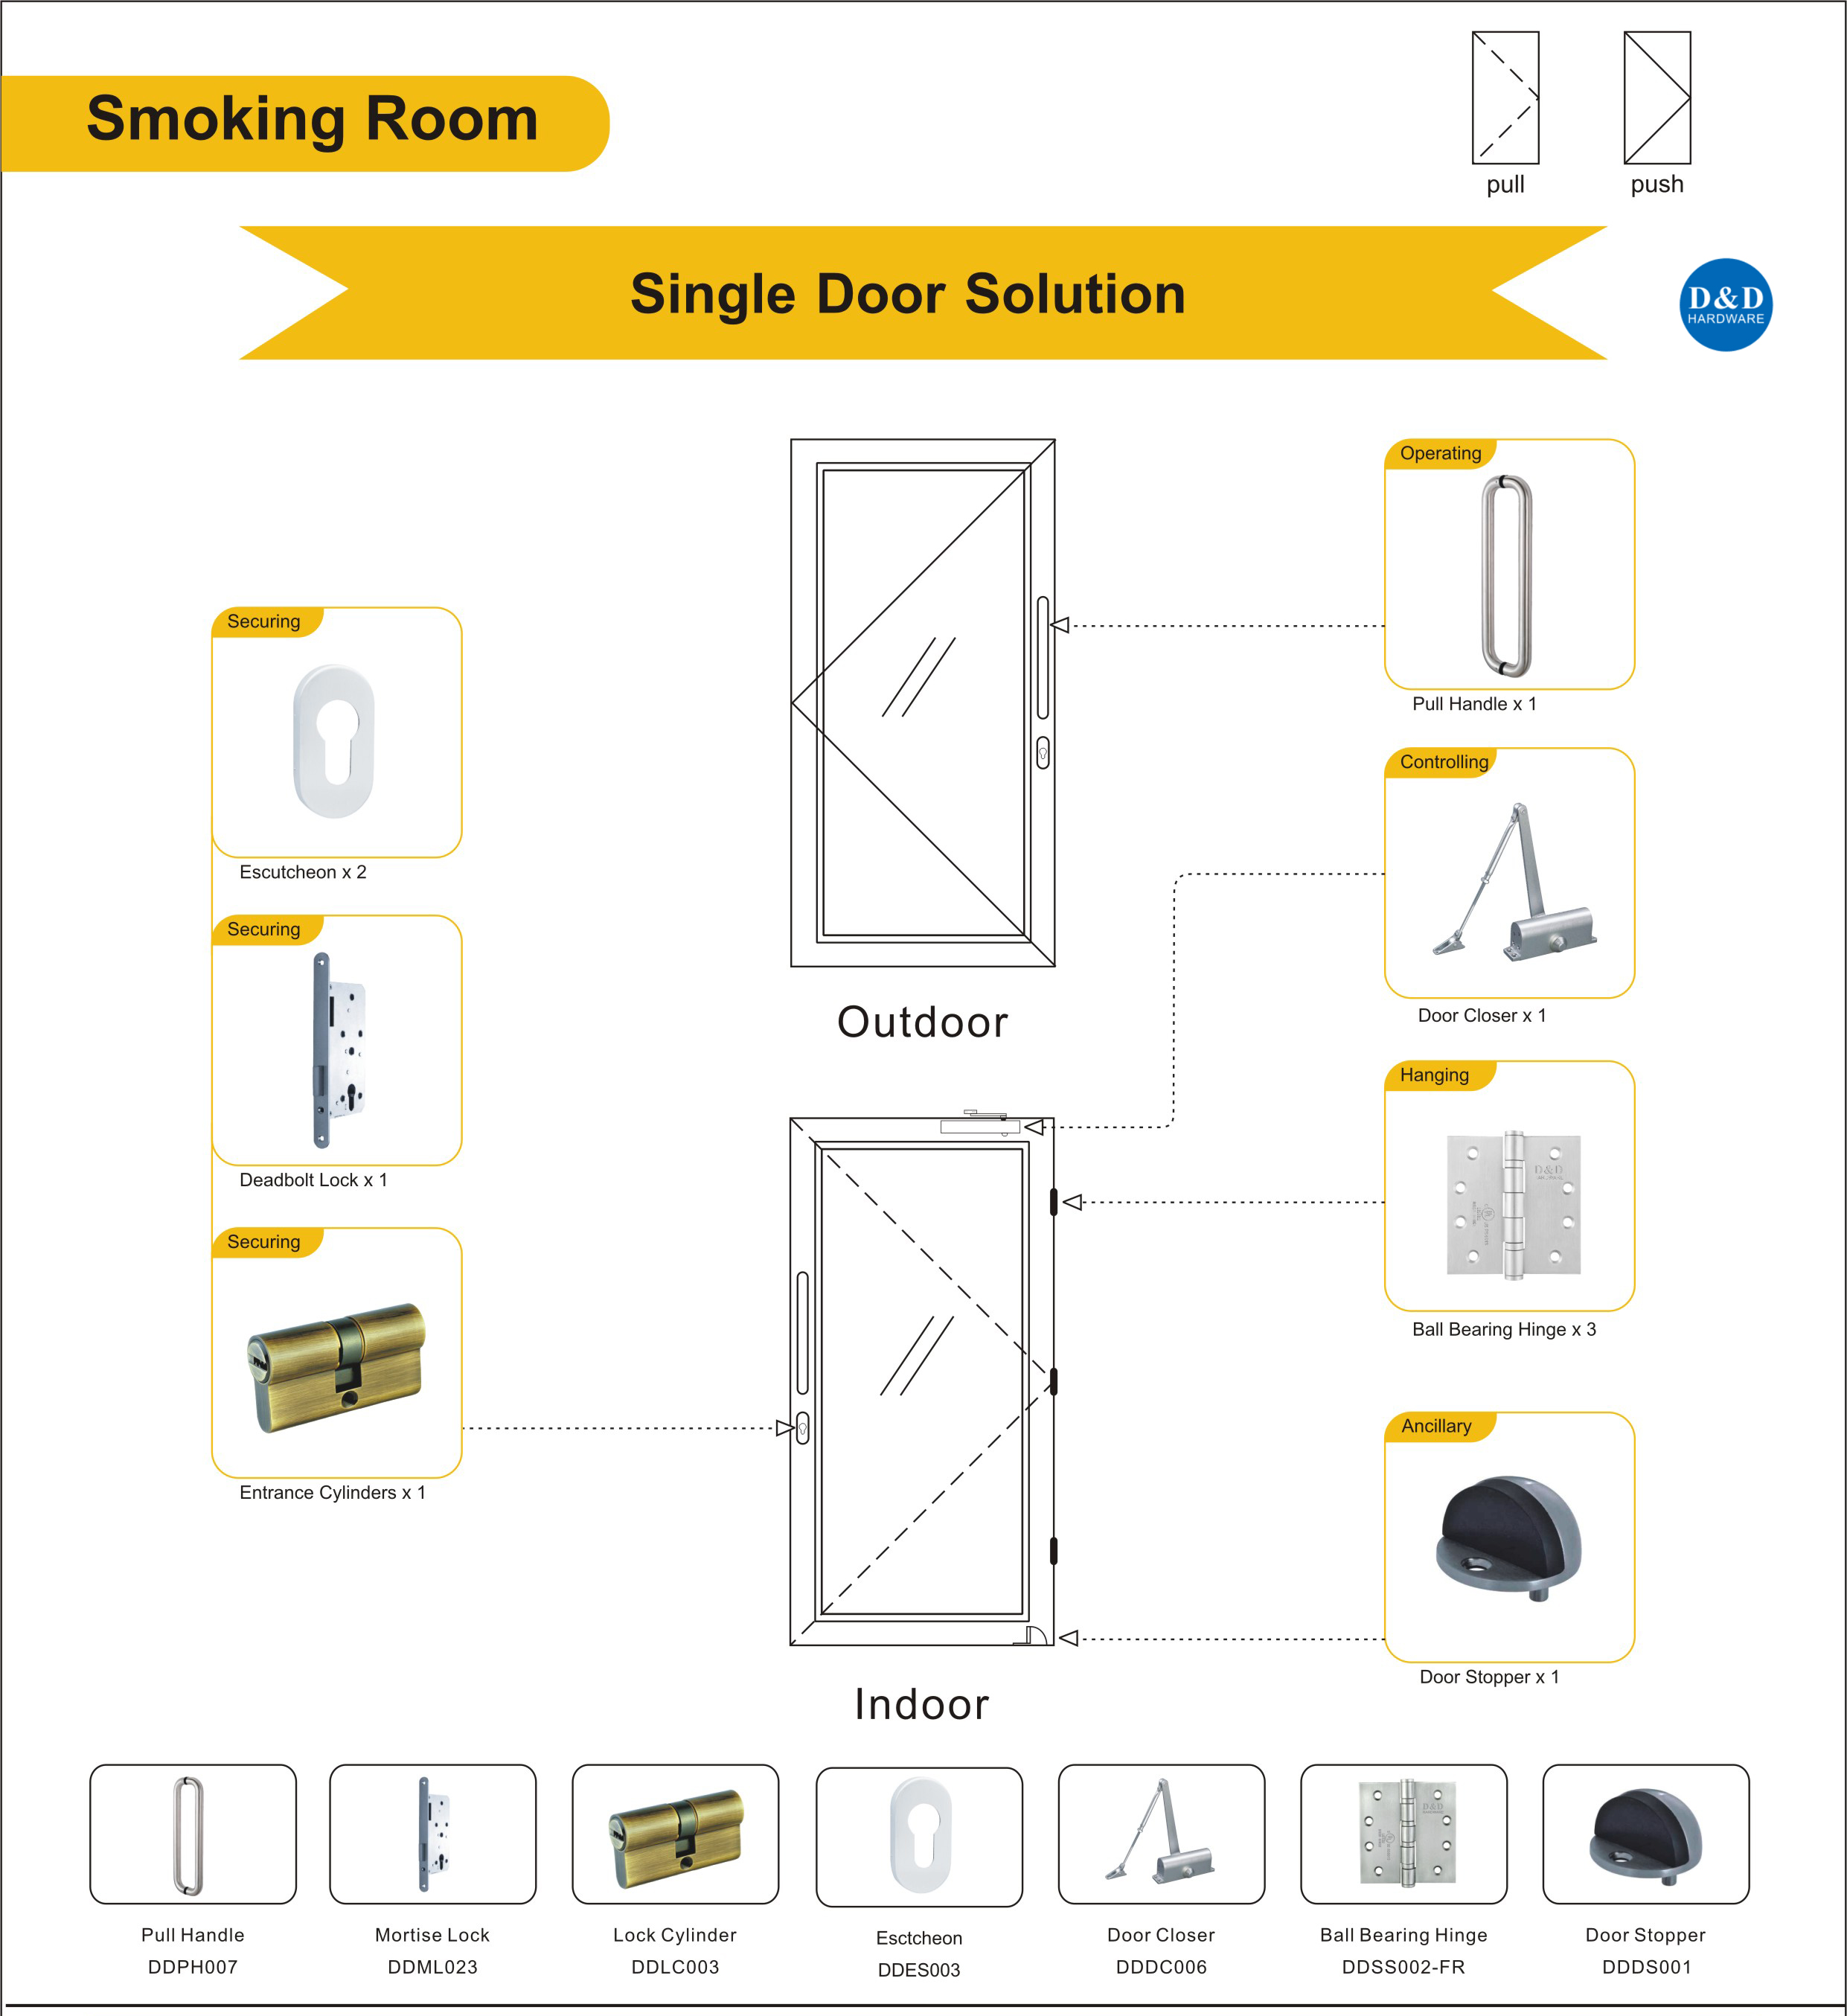 Metal Door Hardware Solution for Smoking Room Single Door